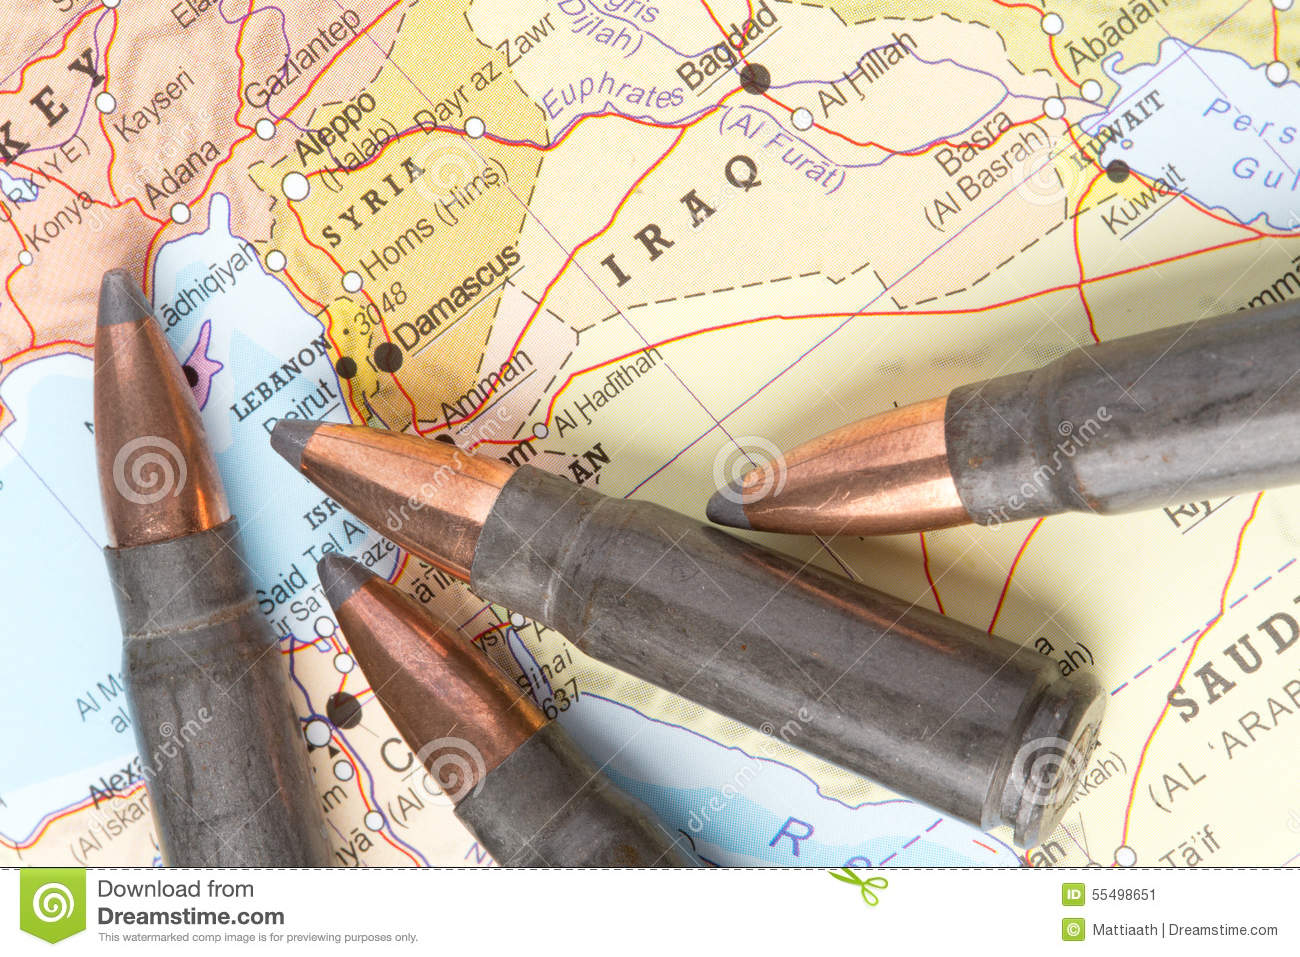 Bullets on the map of iraq and syria stock image image of bullet bullets on the map of iraq and syria sciox Gallery